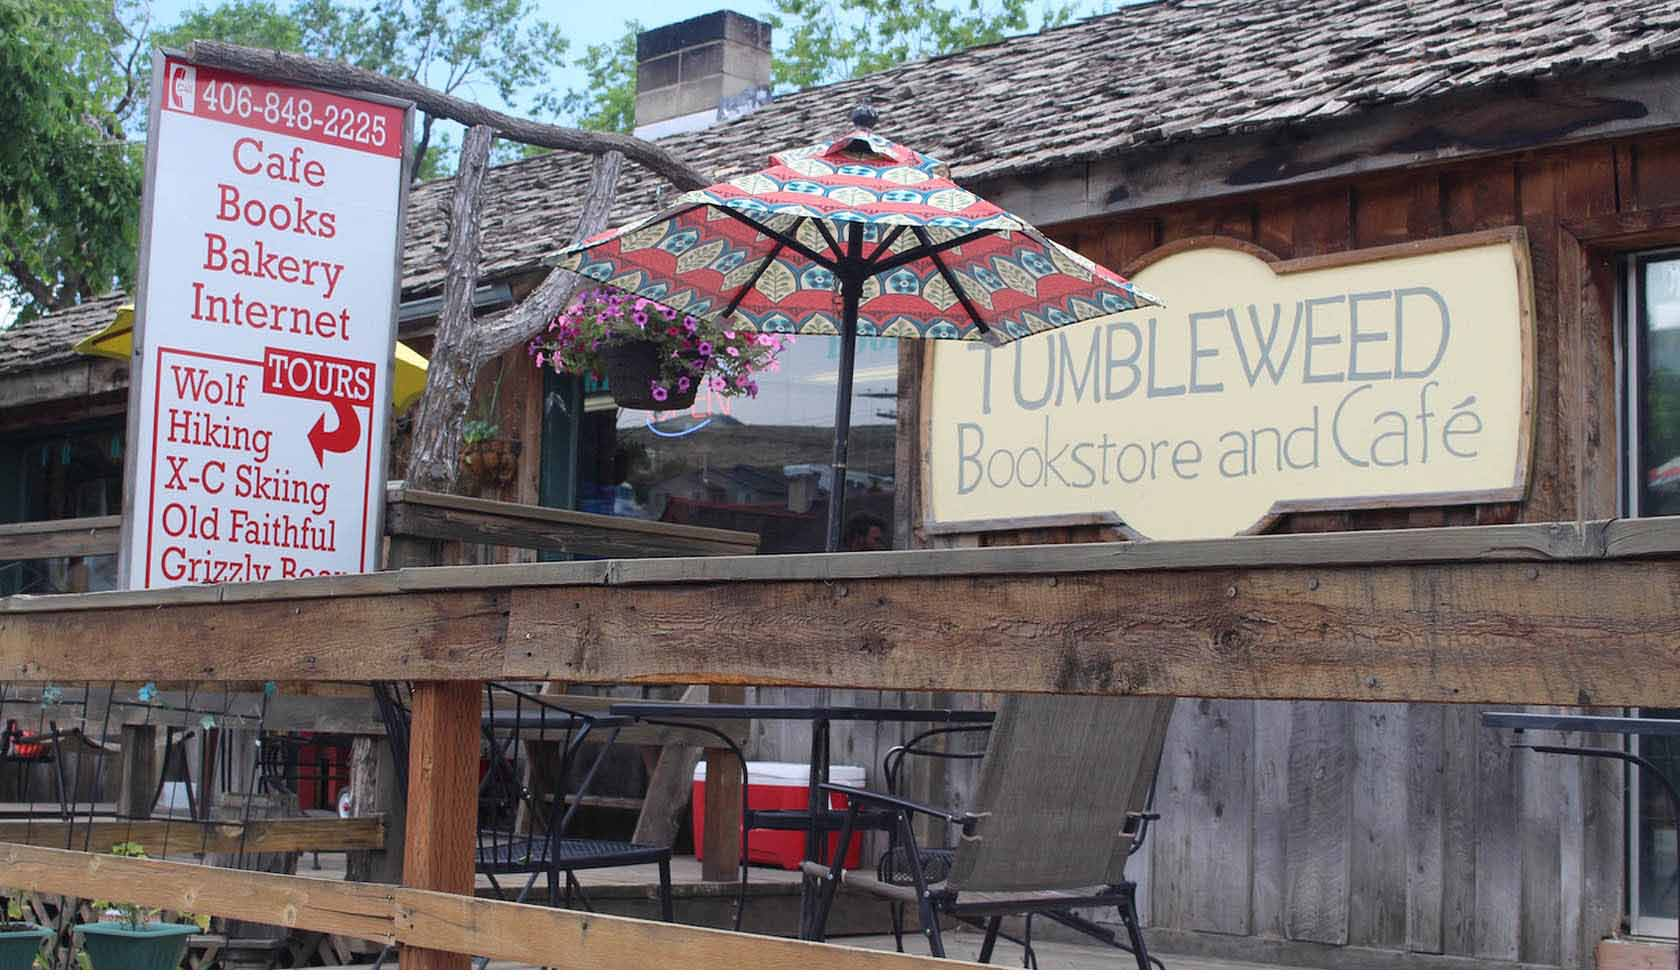 Tumbleweed Bookstore and Cafe profile image